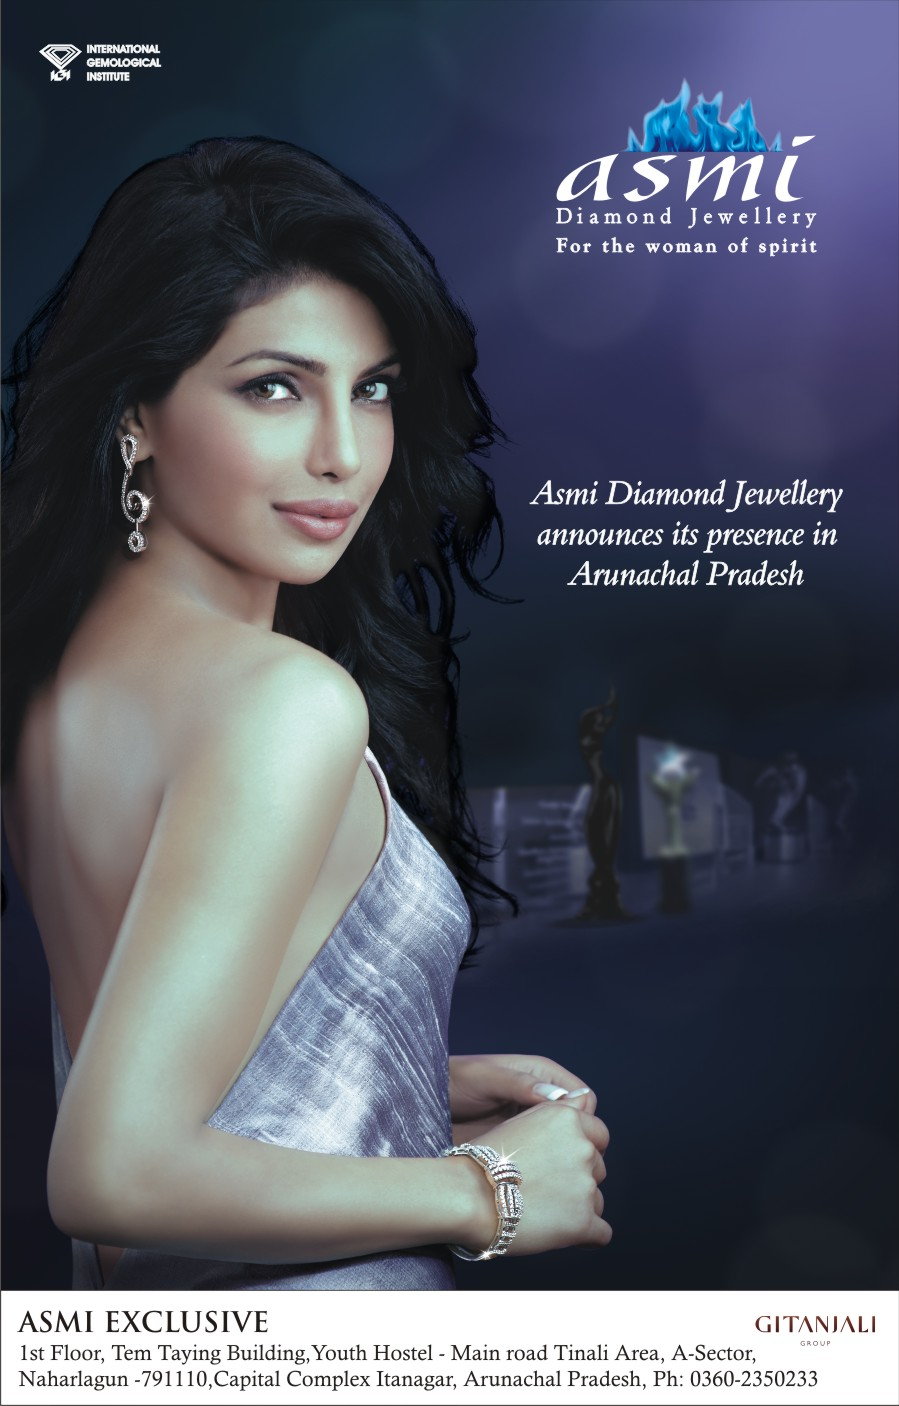 Asmi Jewellery Ads India Asmi Diamond Jewellery